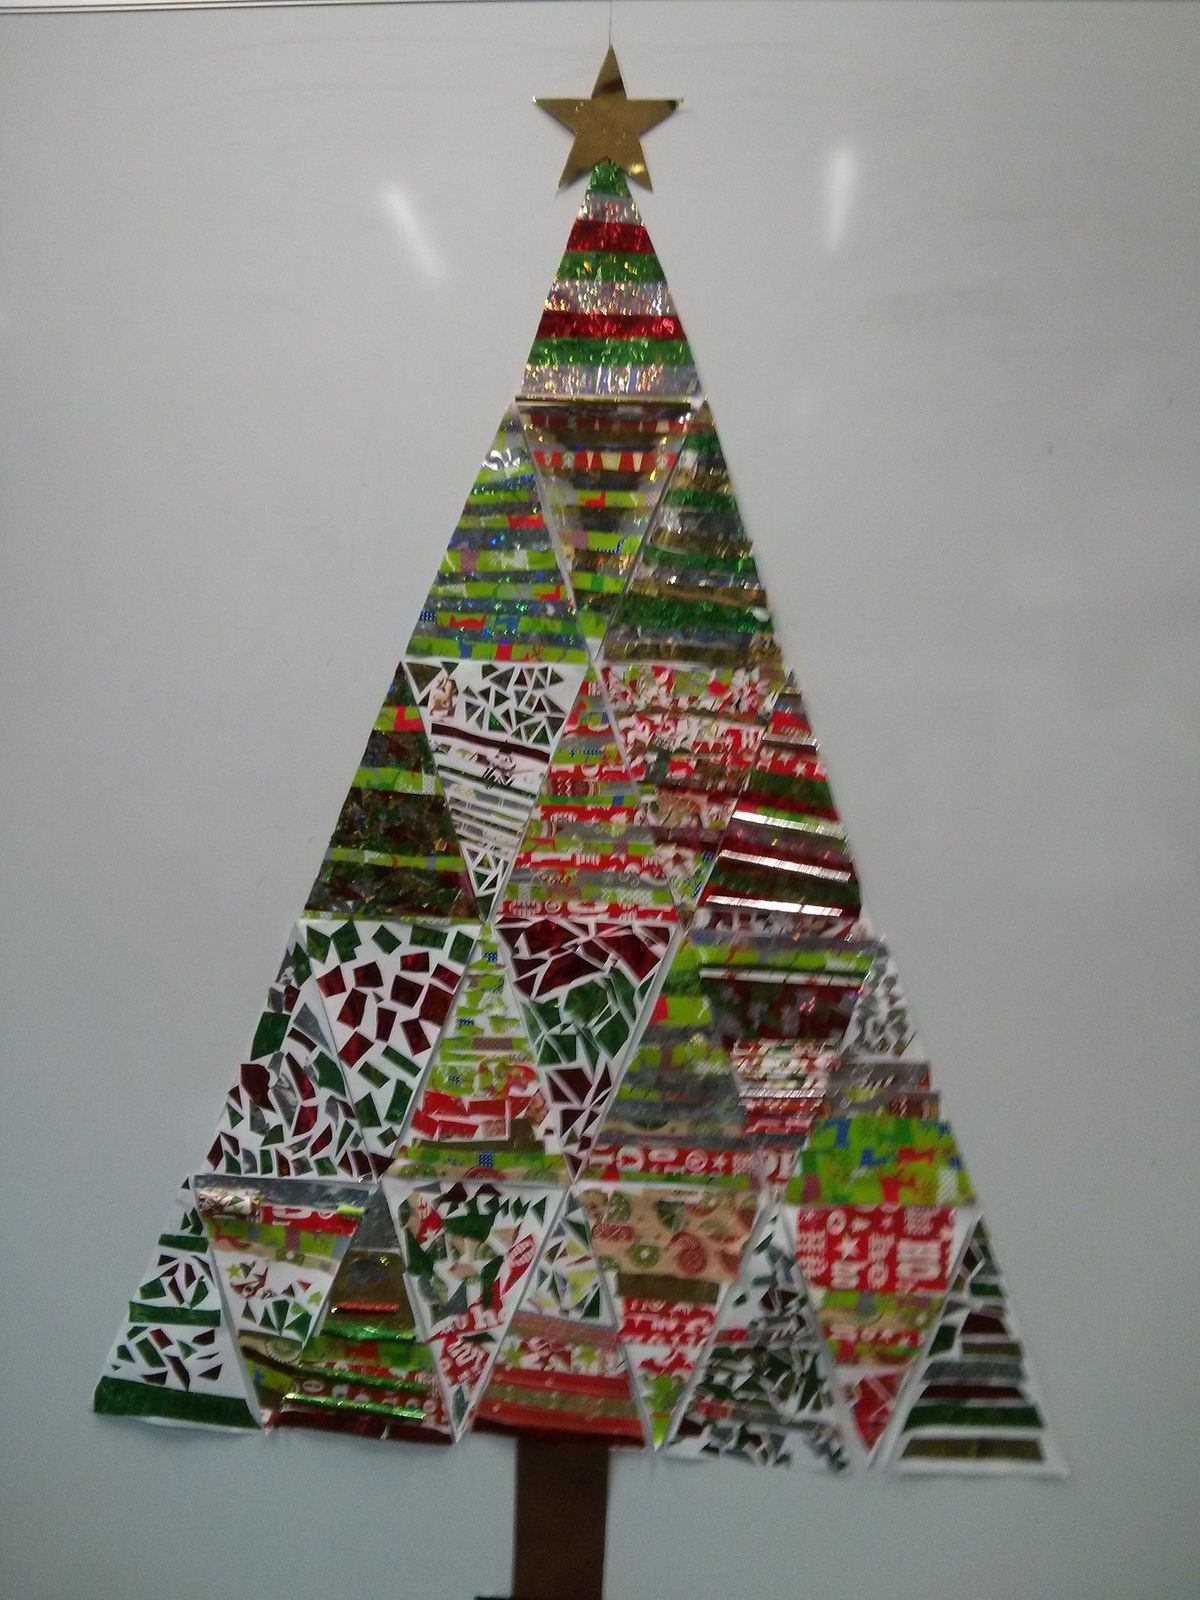 grade 3 4 christmas display Christmas Pinterest